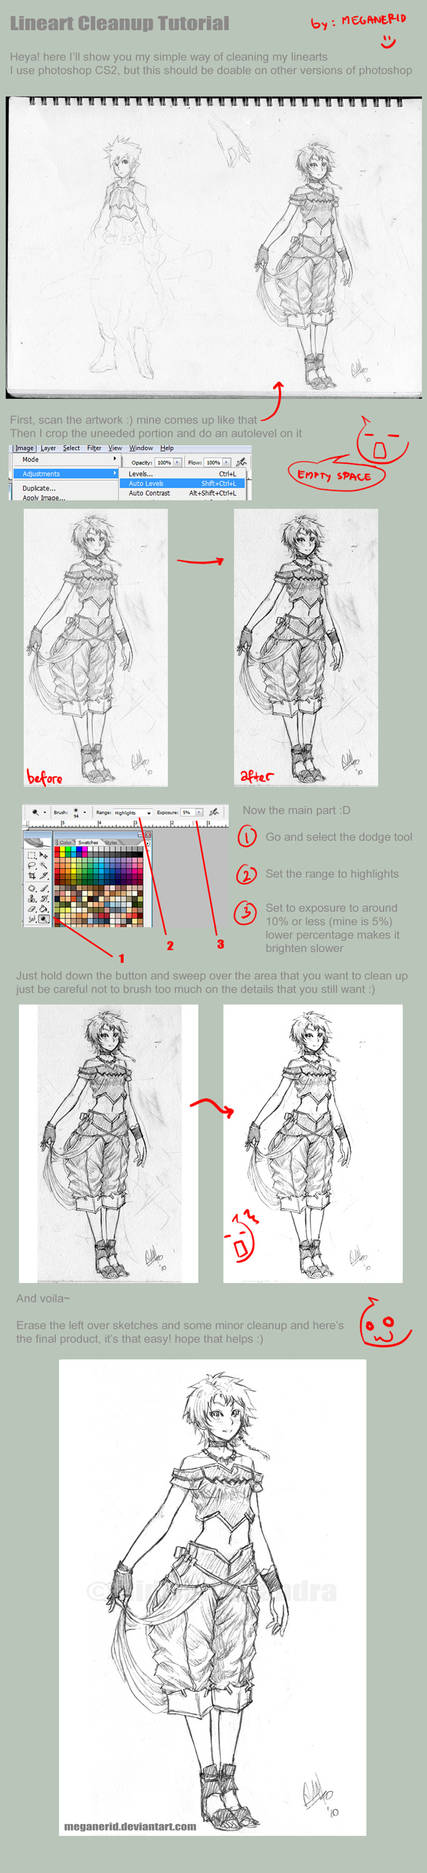 Lineart Clean Up Tutorial